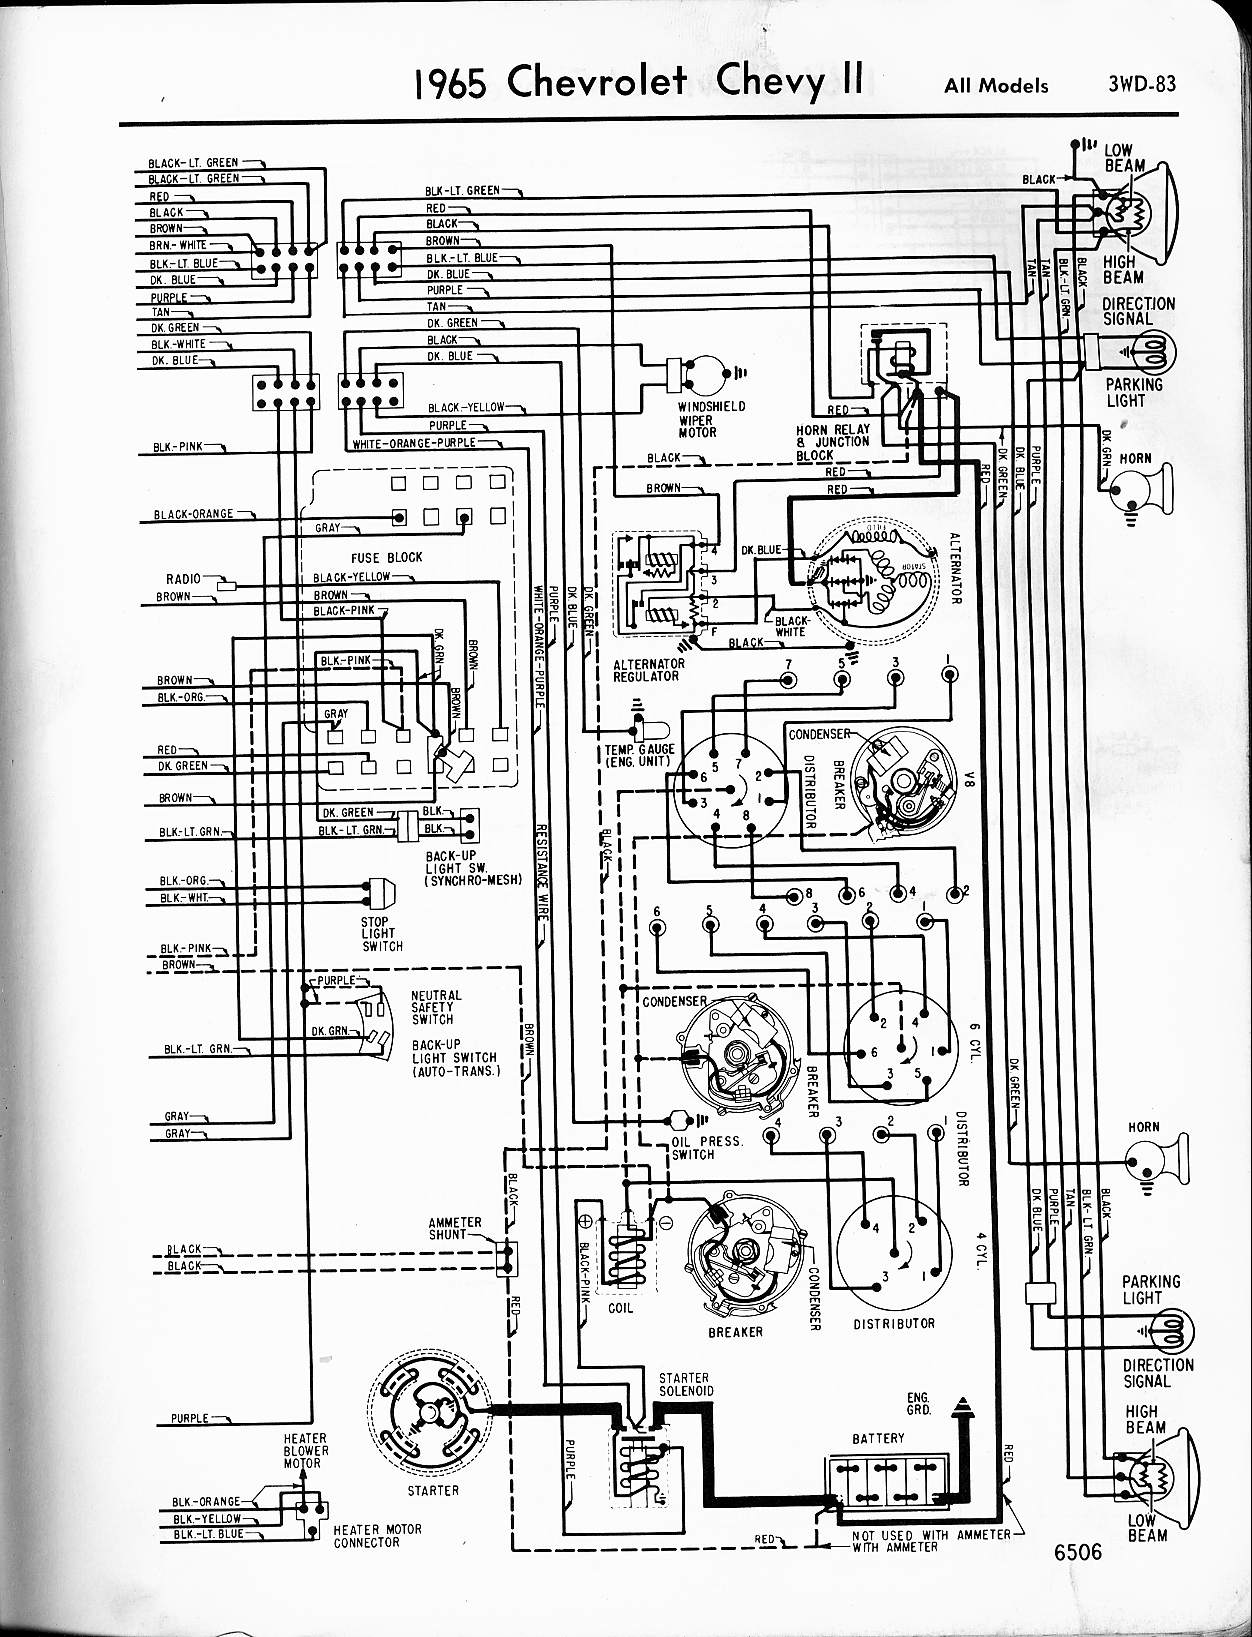 MWireChev65_3WD 083 chevy diagrams 1968 nova wiring harness at suagrazia.org